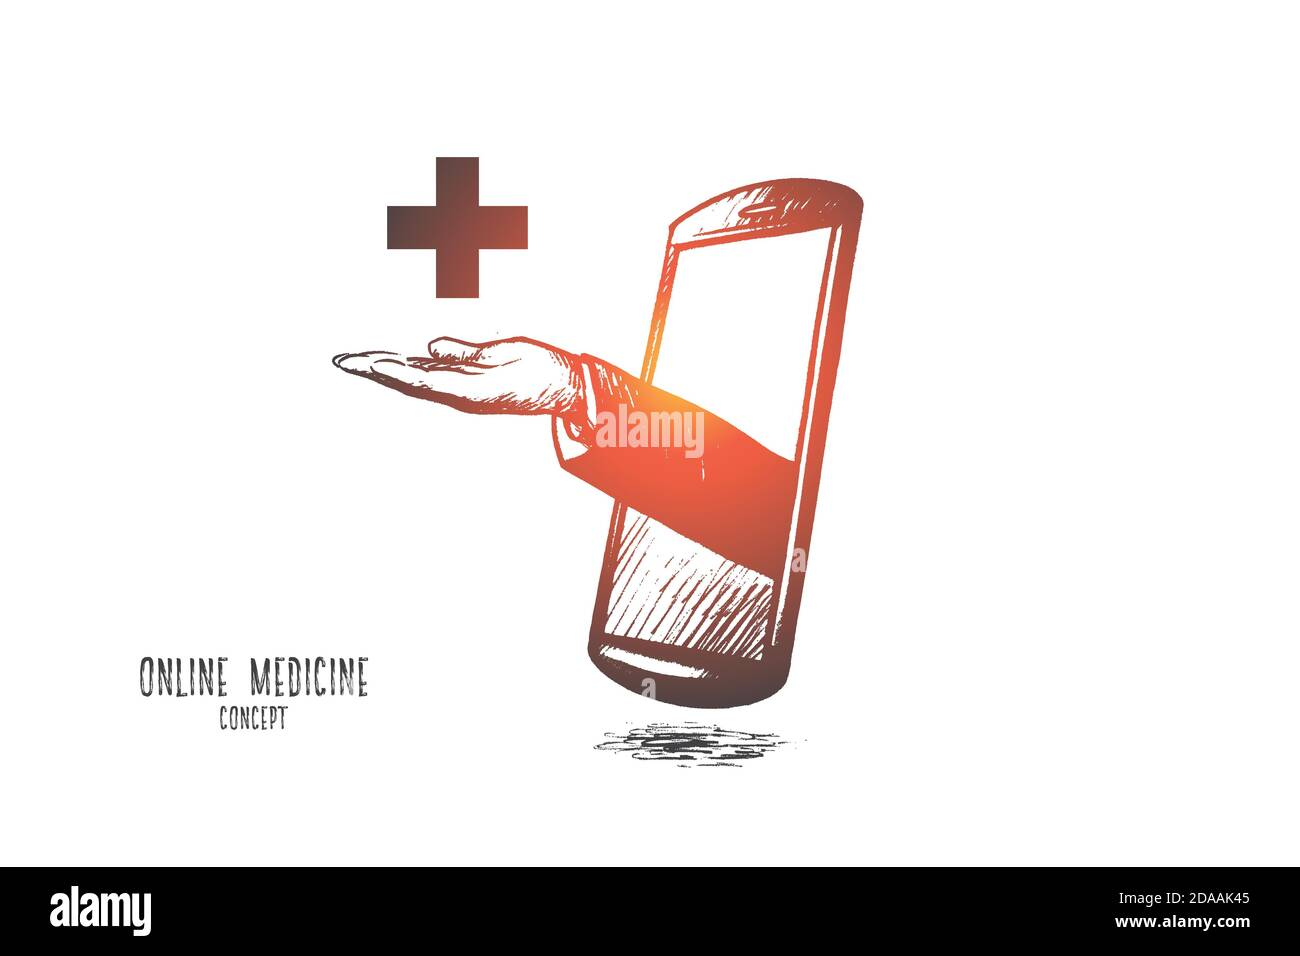 Online medicine concept. Hand drawn isolated vector. Stock Vector